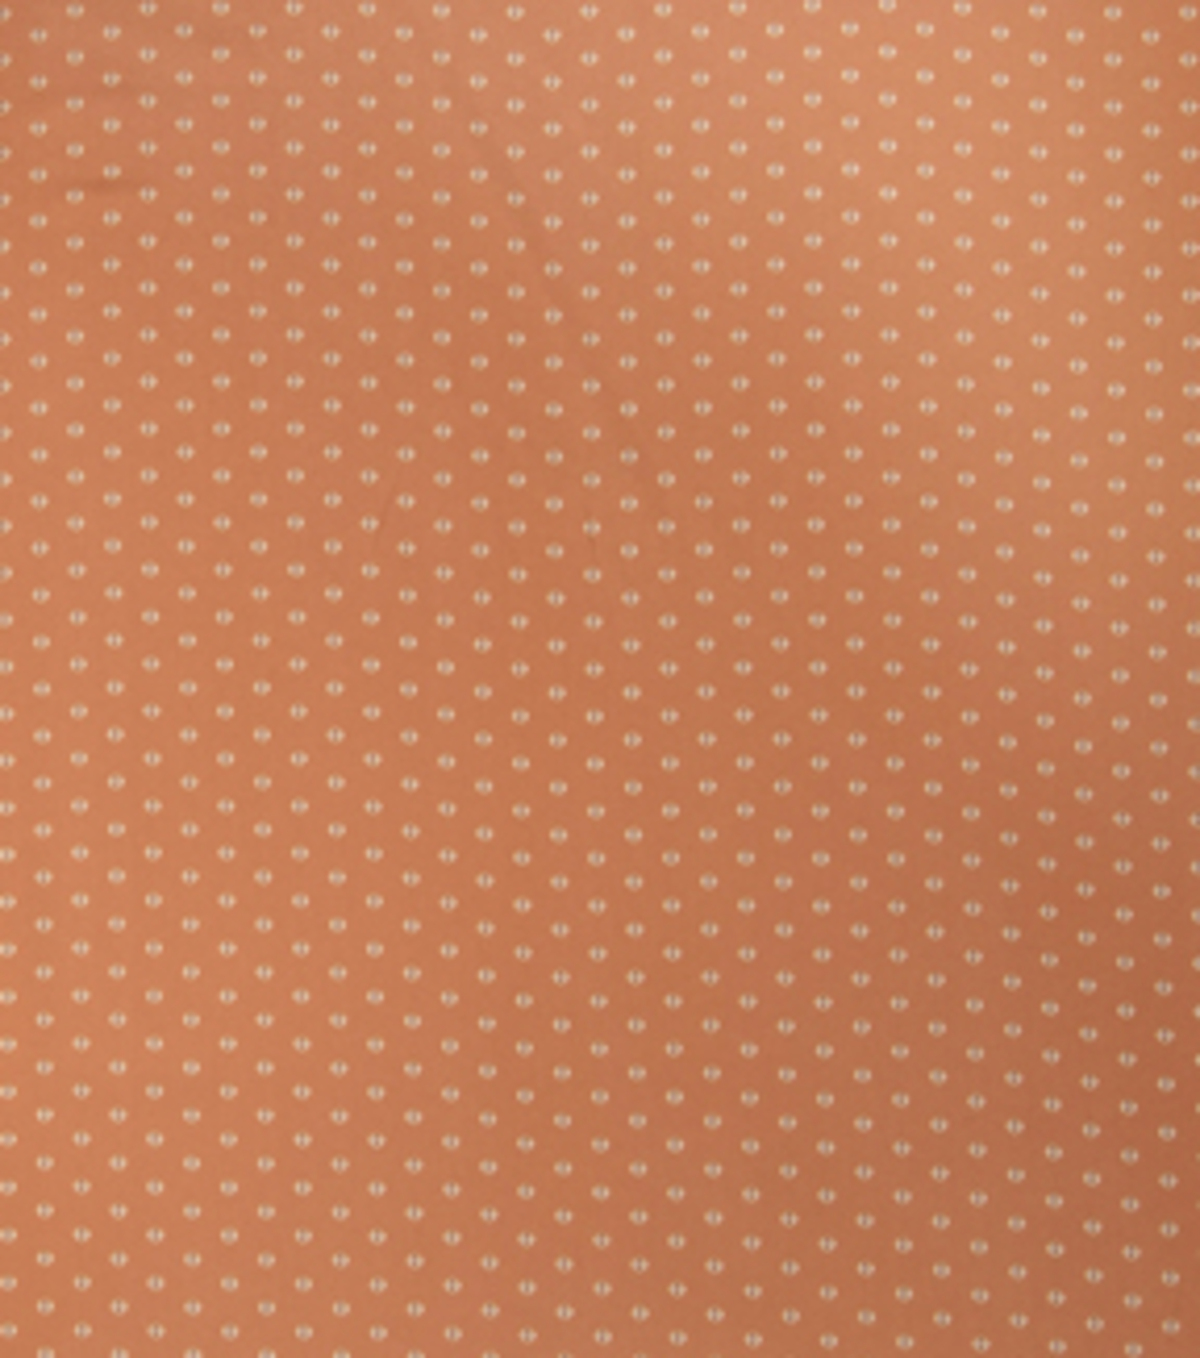 Home Decor 8\u0022x8\u0022 Fabric Swatch-SMC Designs Brodie / Persimmon